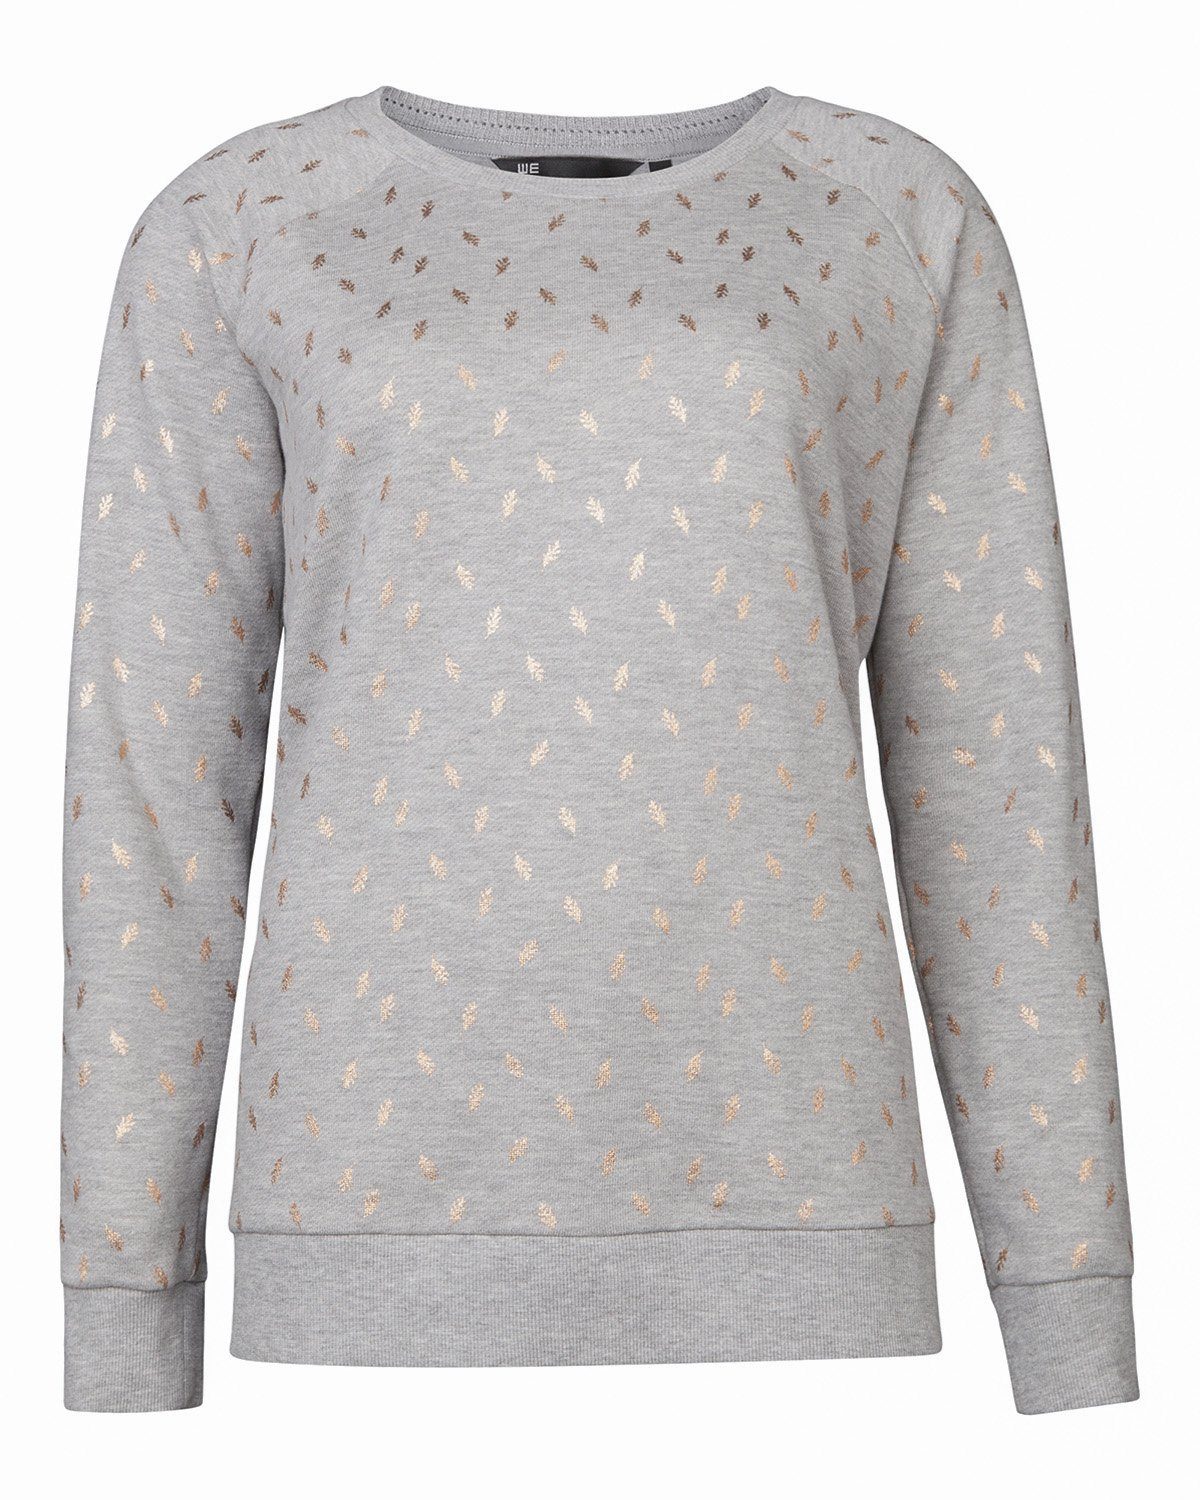 Dames Trui Met Print.Dames Leaf Print Sweater 79563512 We Fashion